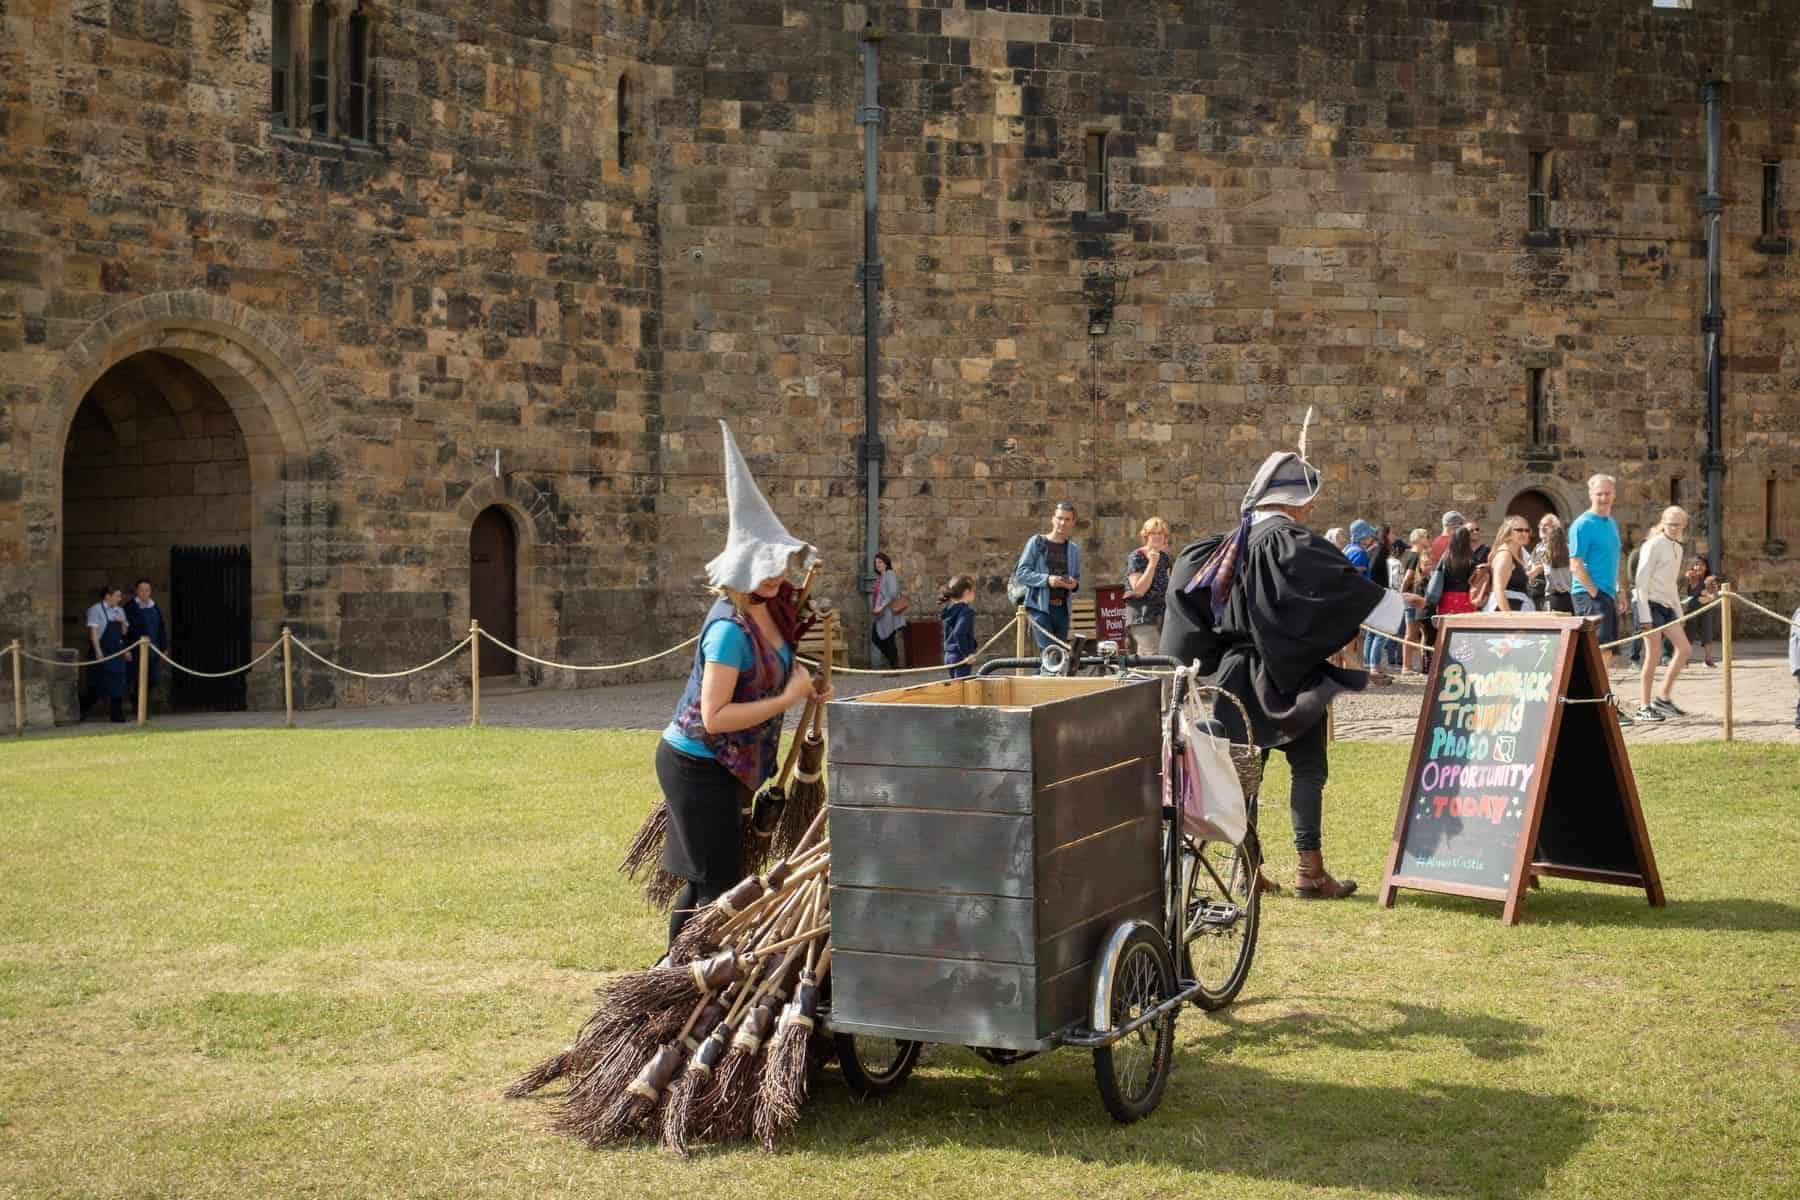 Alnwick Castle - broomstick training sessions inspired by Harry Potter movies. Trainings at the same spot as Harry Potter had a lesson in movie.